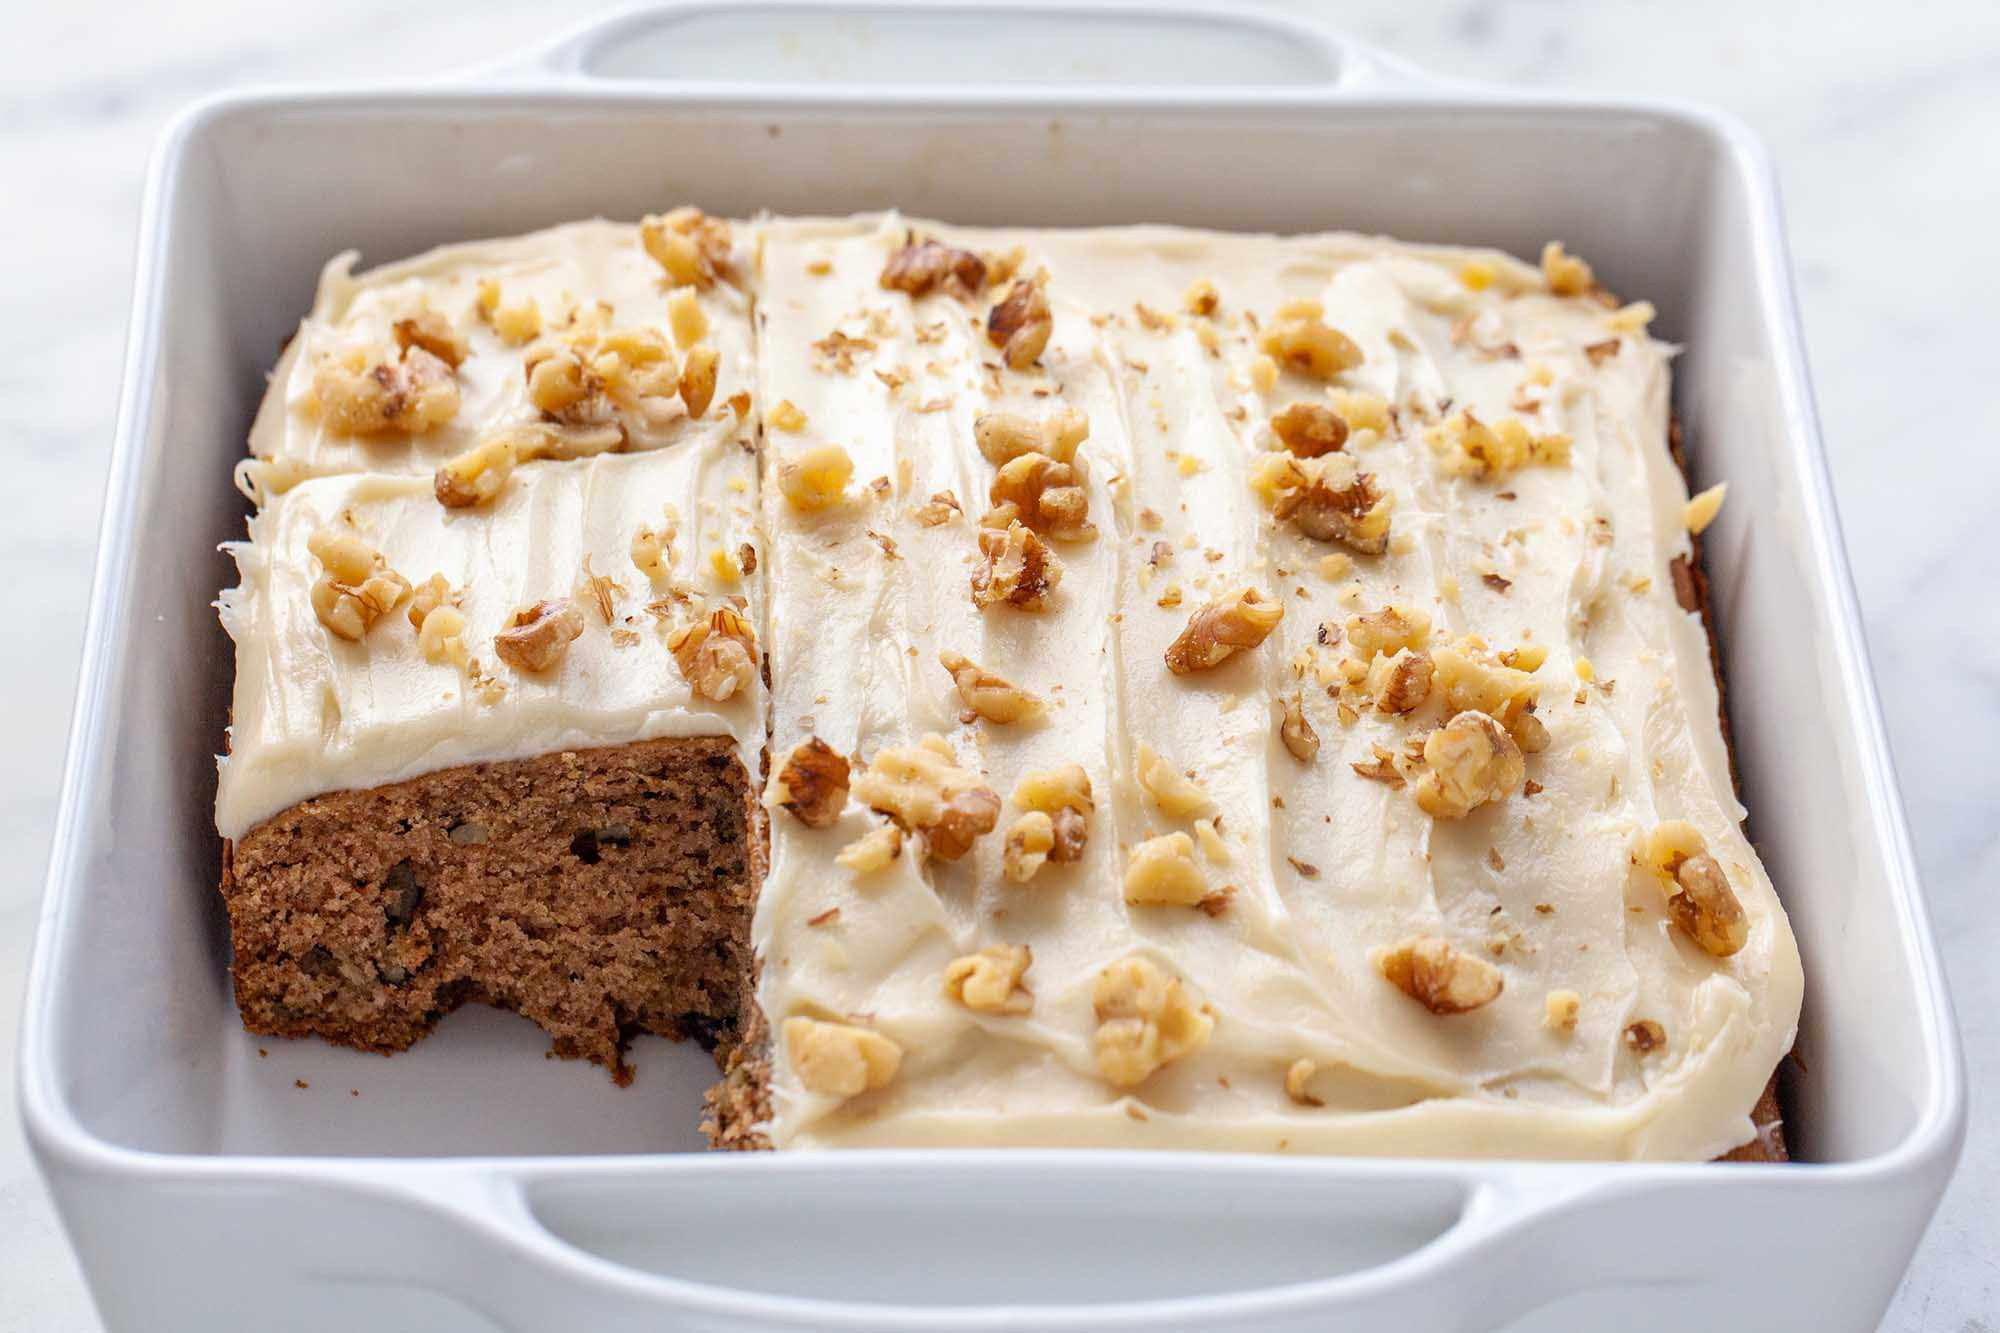 Applesauce cake, frosted and with a piece removed.